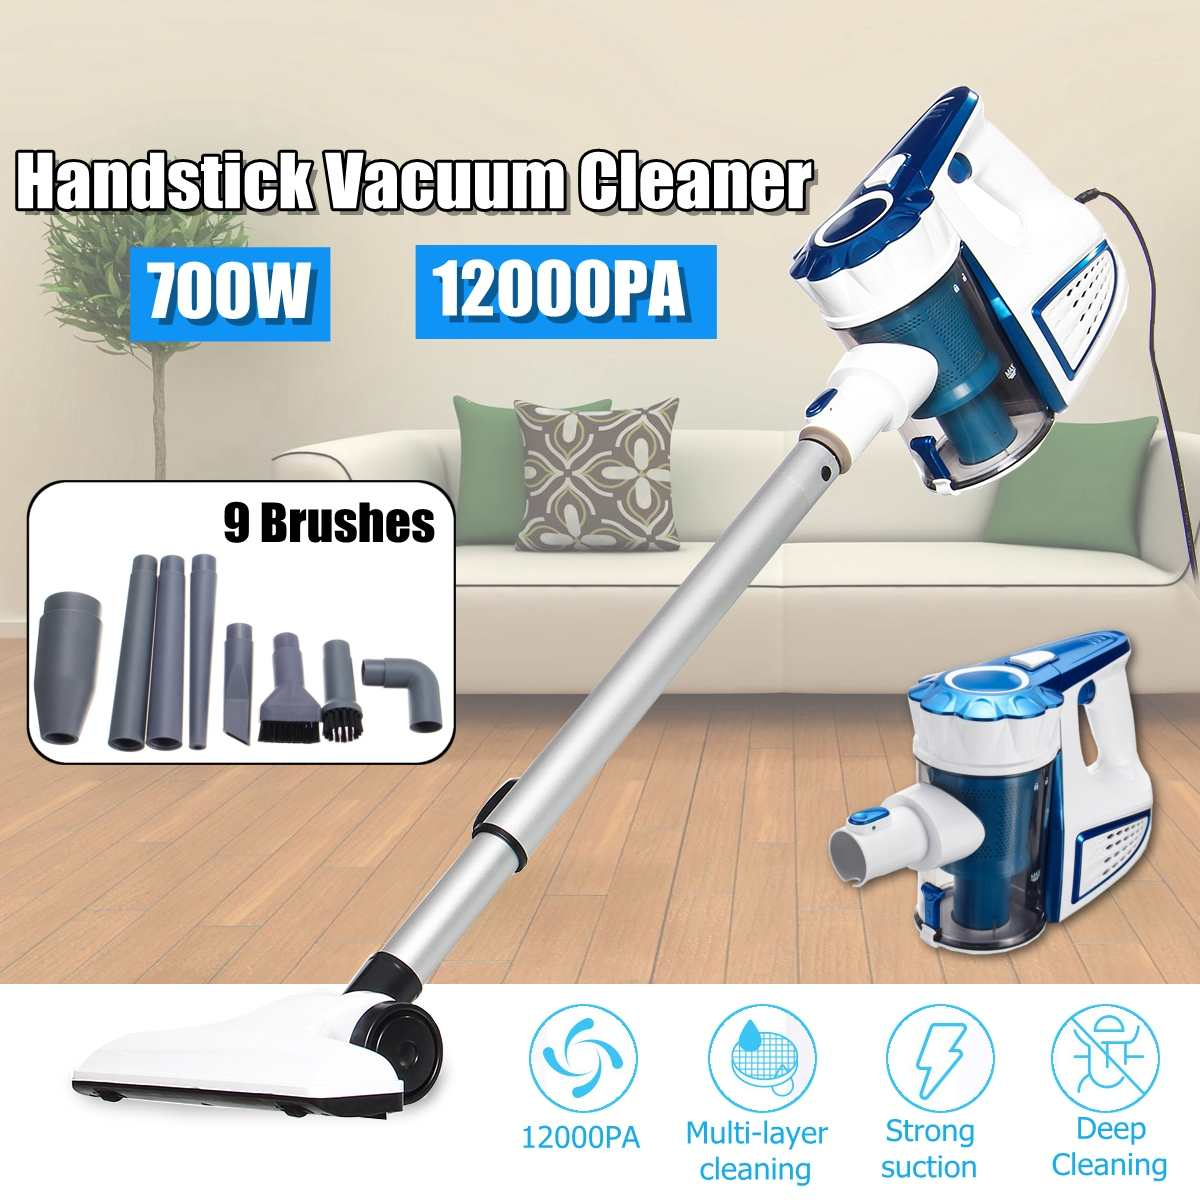 12000PA Suction 700W Baggless Vacuum Cleaner Handheld Cordless Upright Vacuum Cleaner with 9pcs Brushes Cleaner Cleaning Tool12000PA Suction 700W Baggless Vacuum Cleaner Handheld Cordless Upright Vacuum Cleaner with 9pcs Brushes Cleaner Cleaning Tool